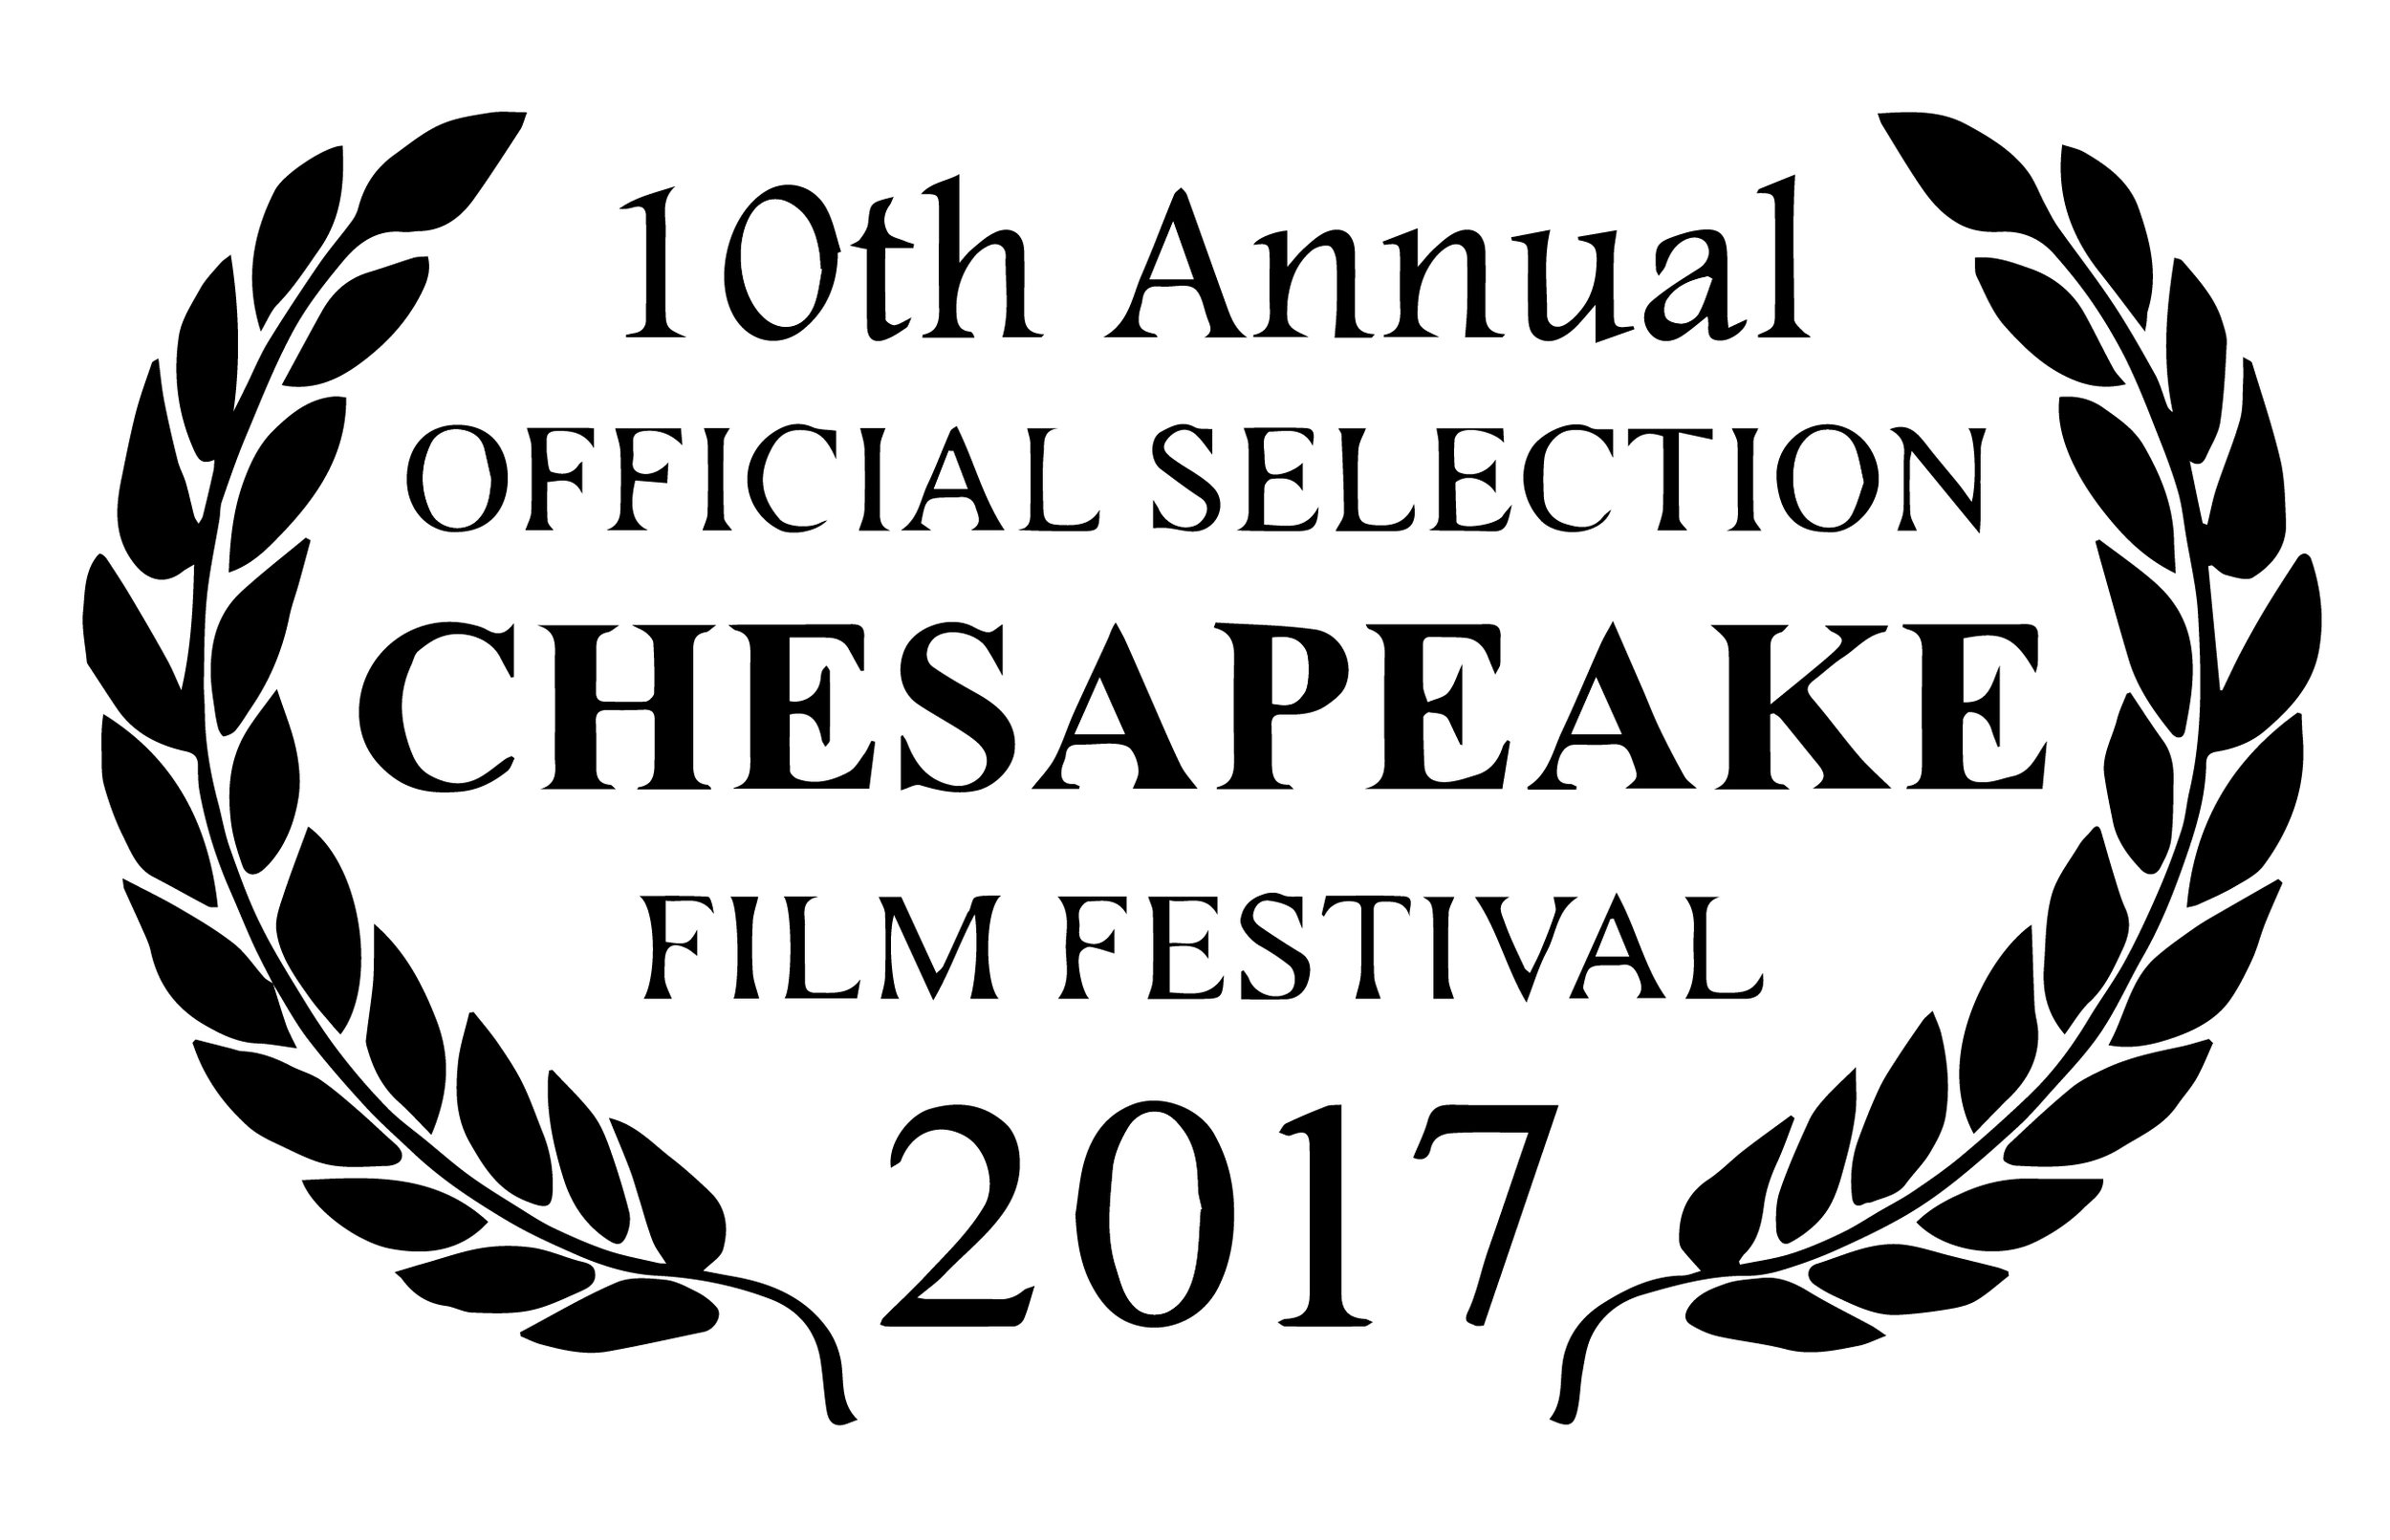 OYSTER - International and North American Premiere at the Chesapeake Film Festival